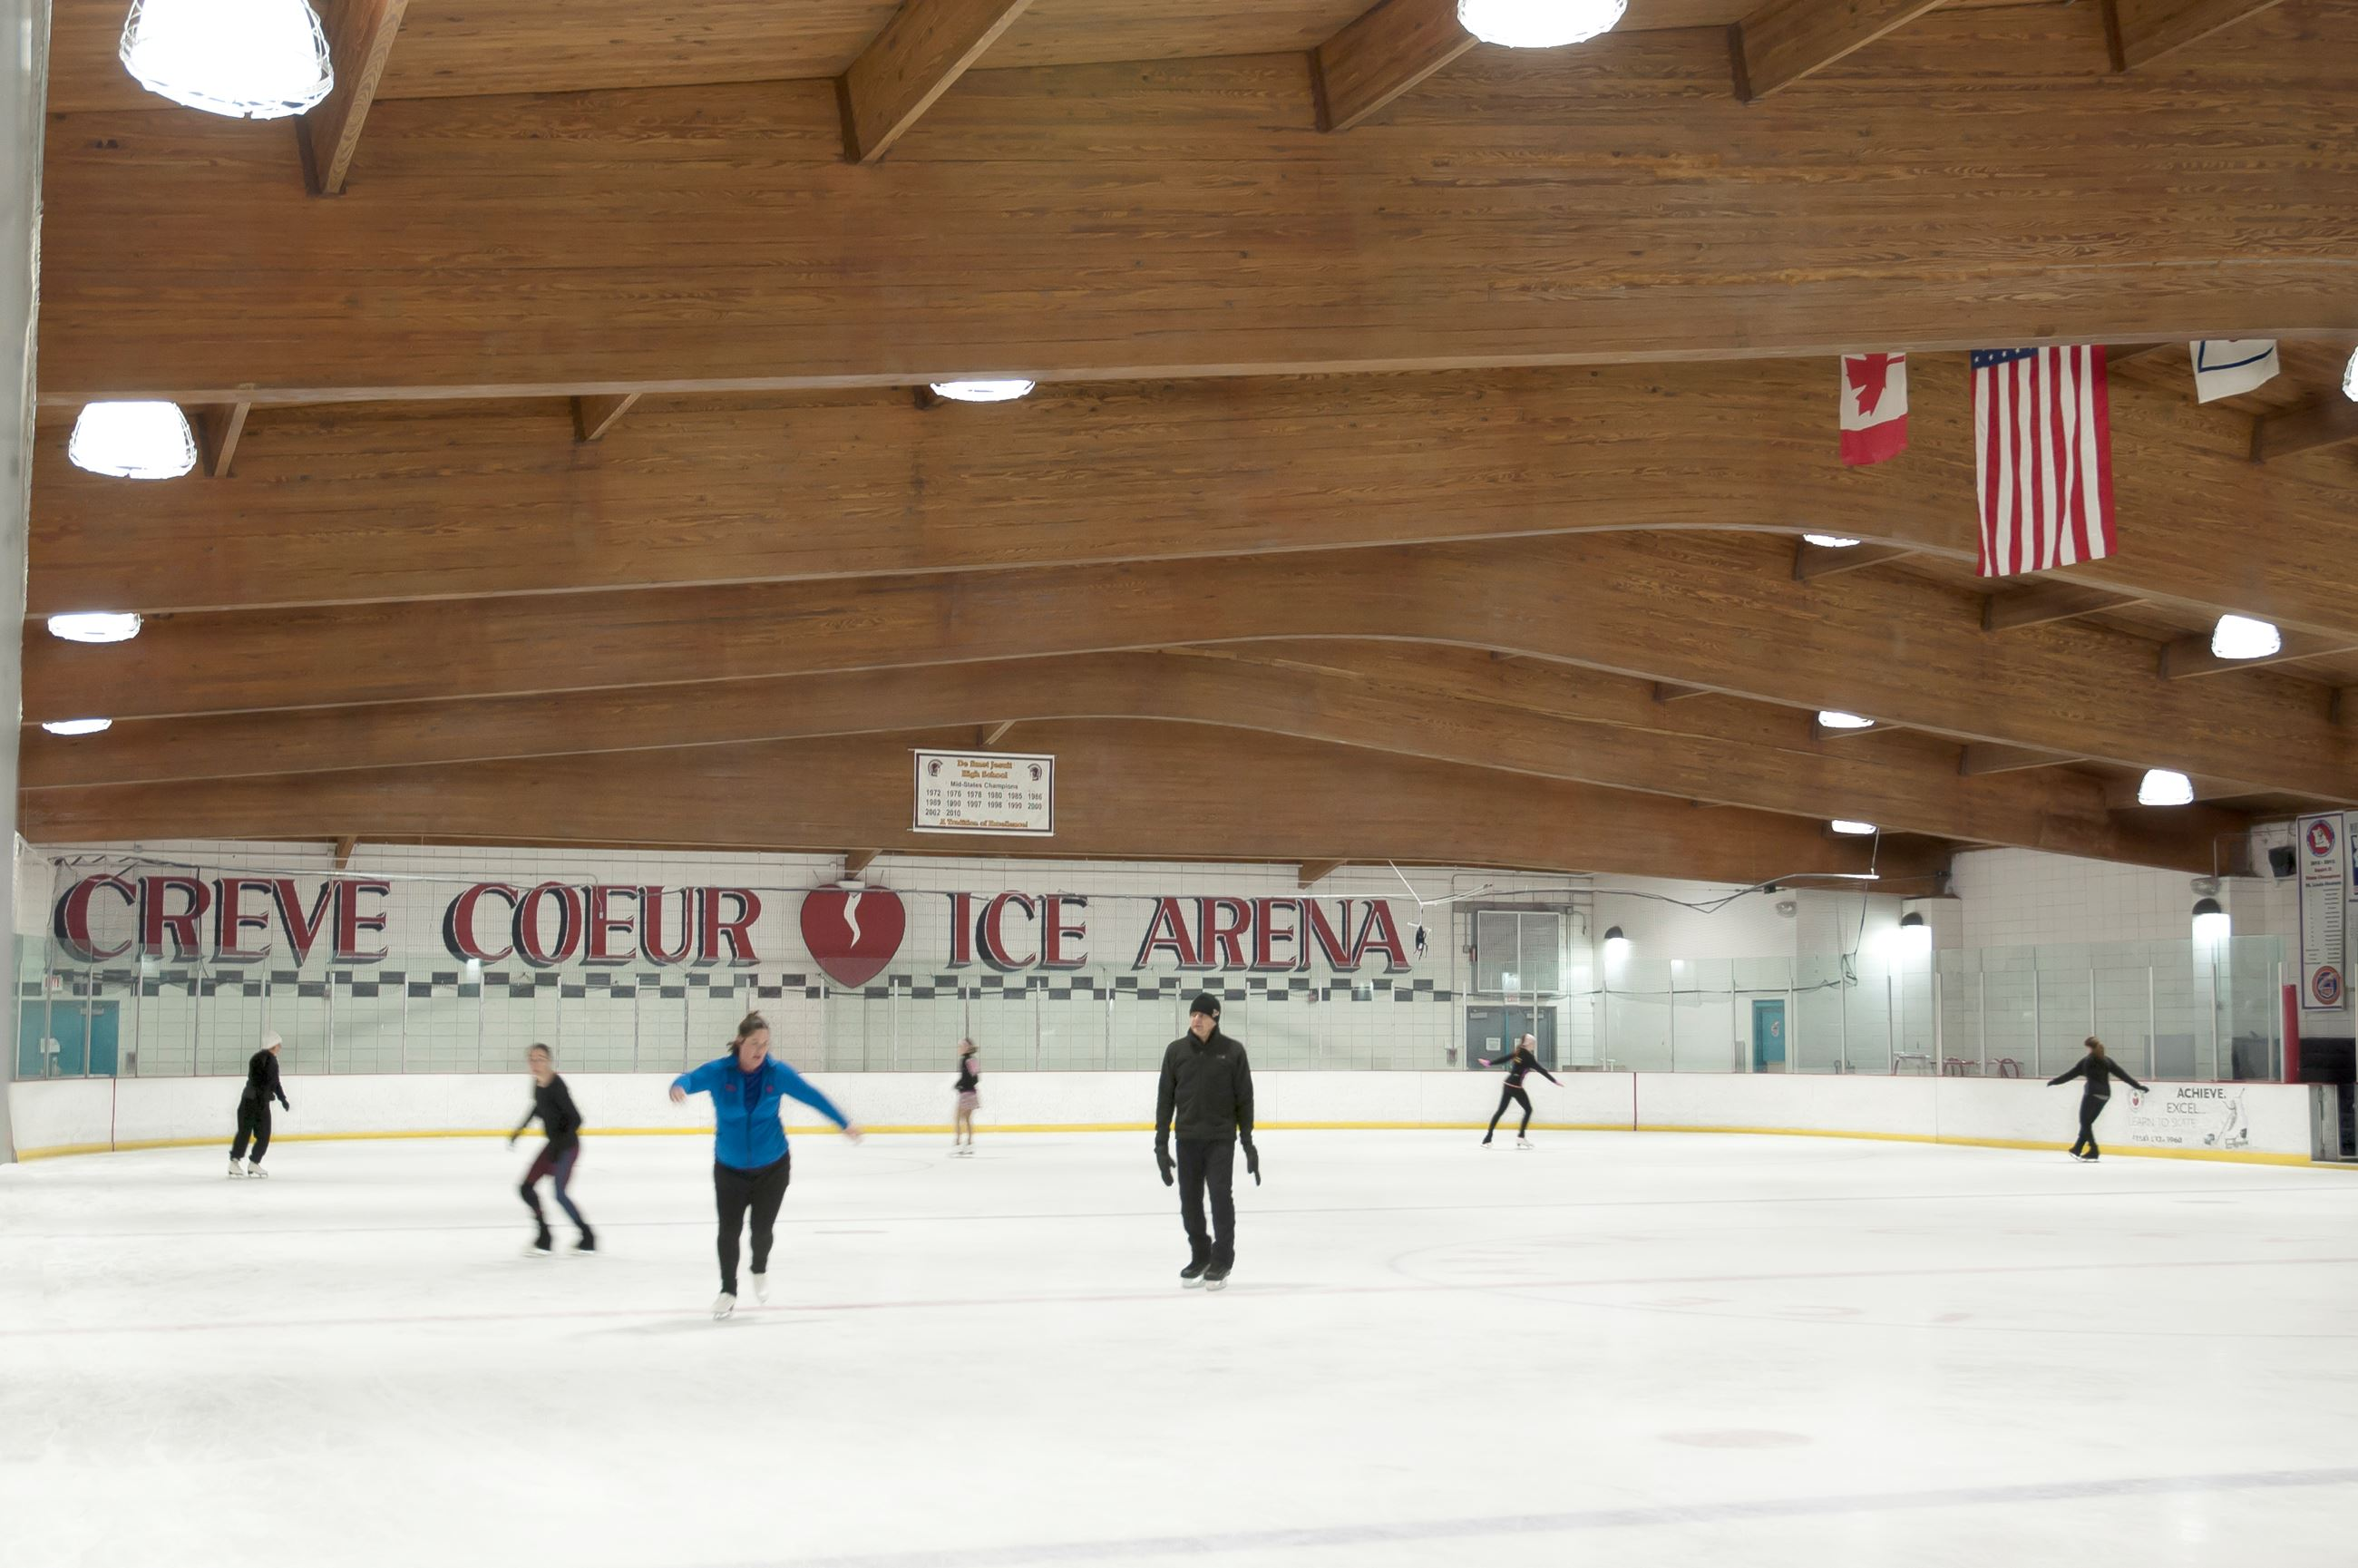 People skating at the ice arena